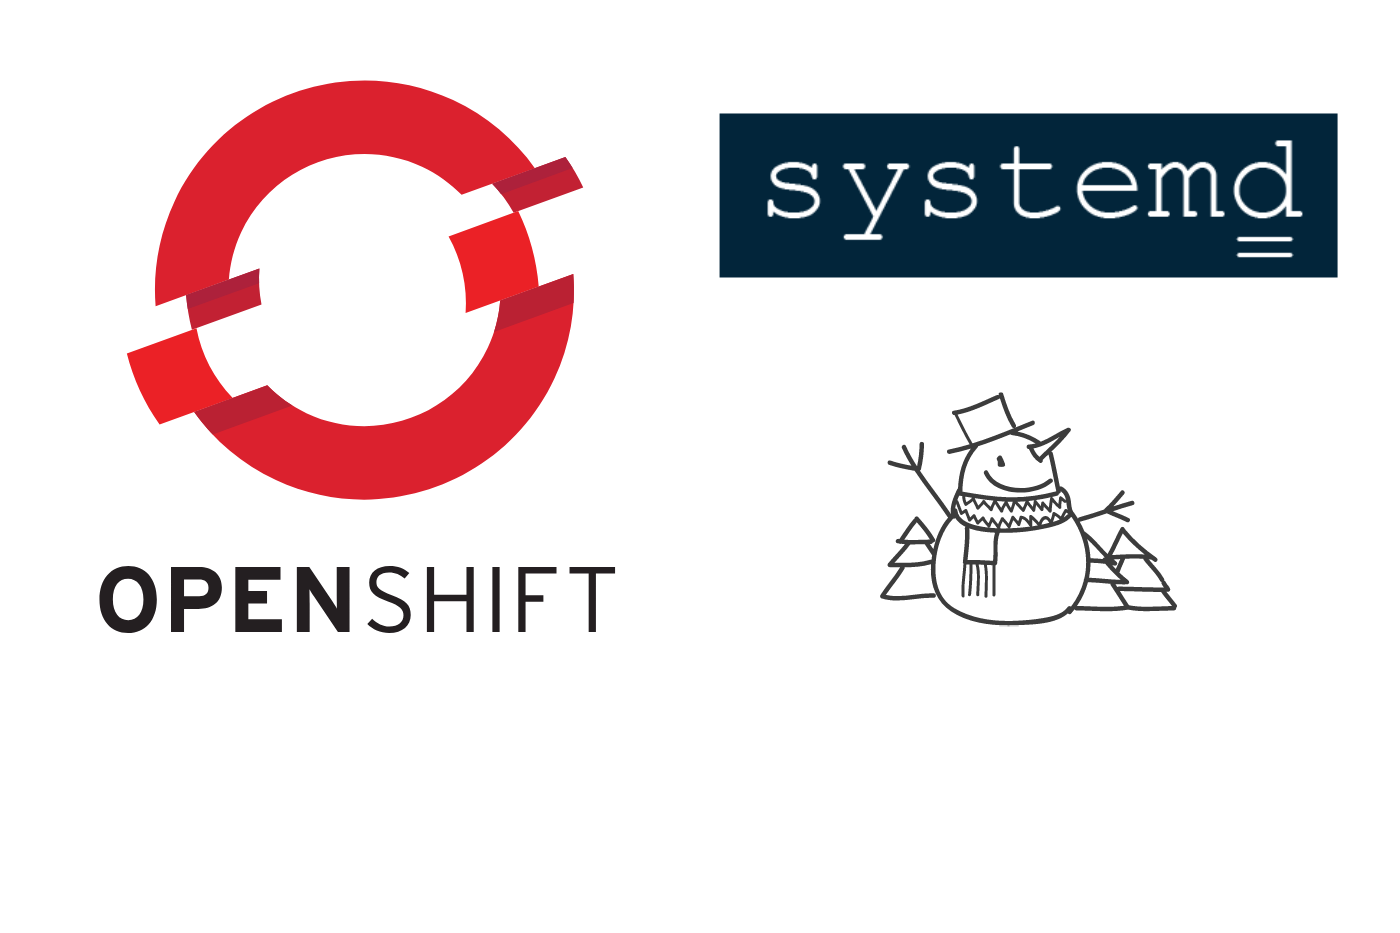 OpenShift oc cluster up as Systemd Service